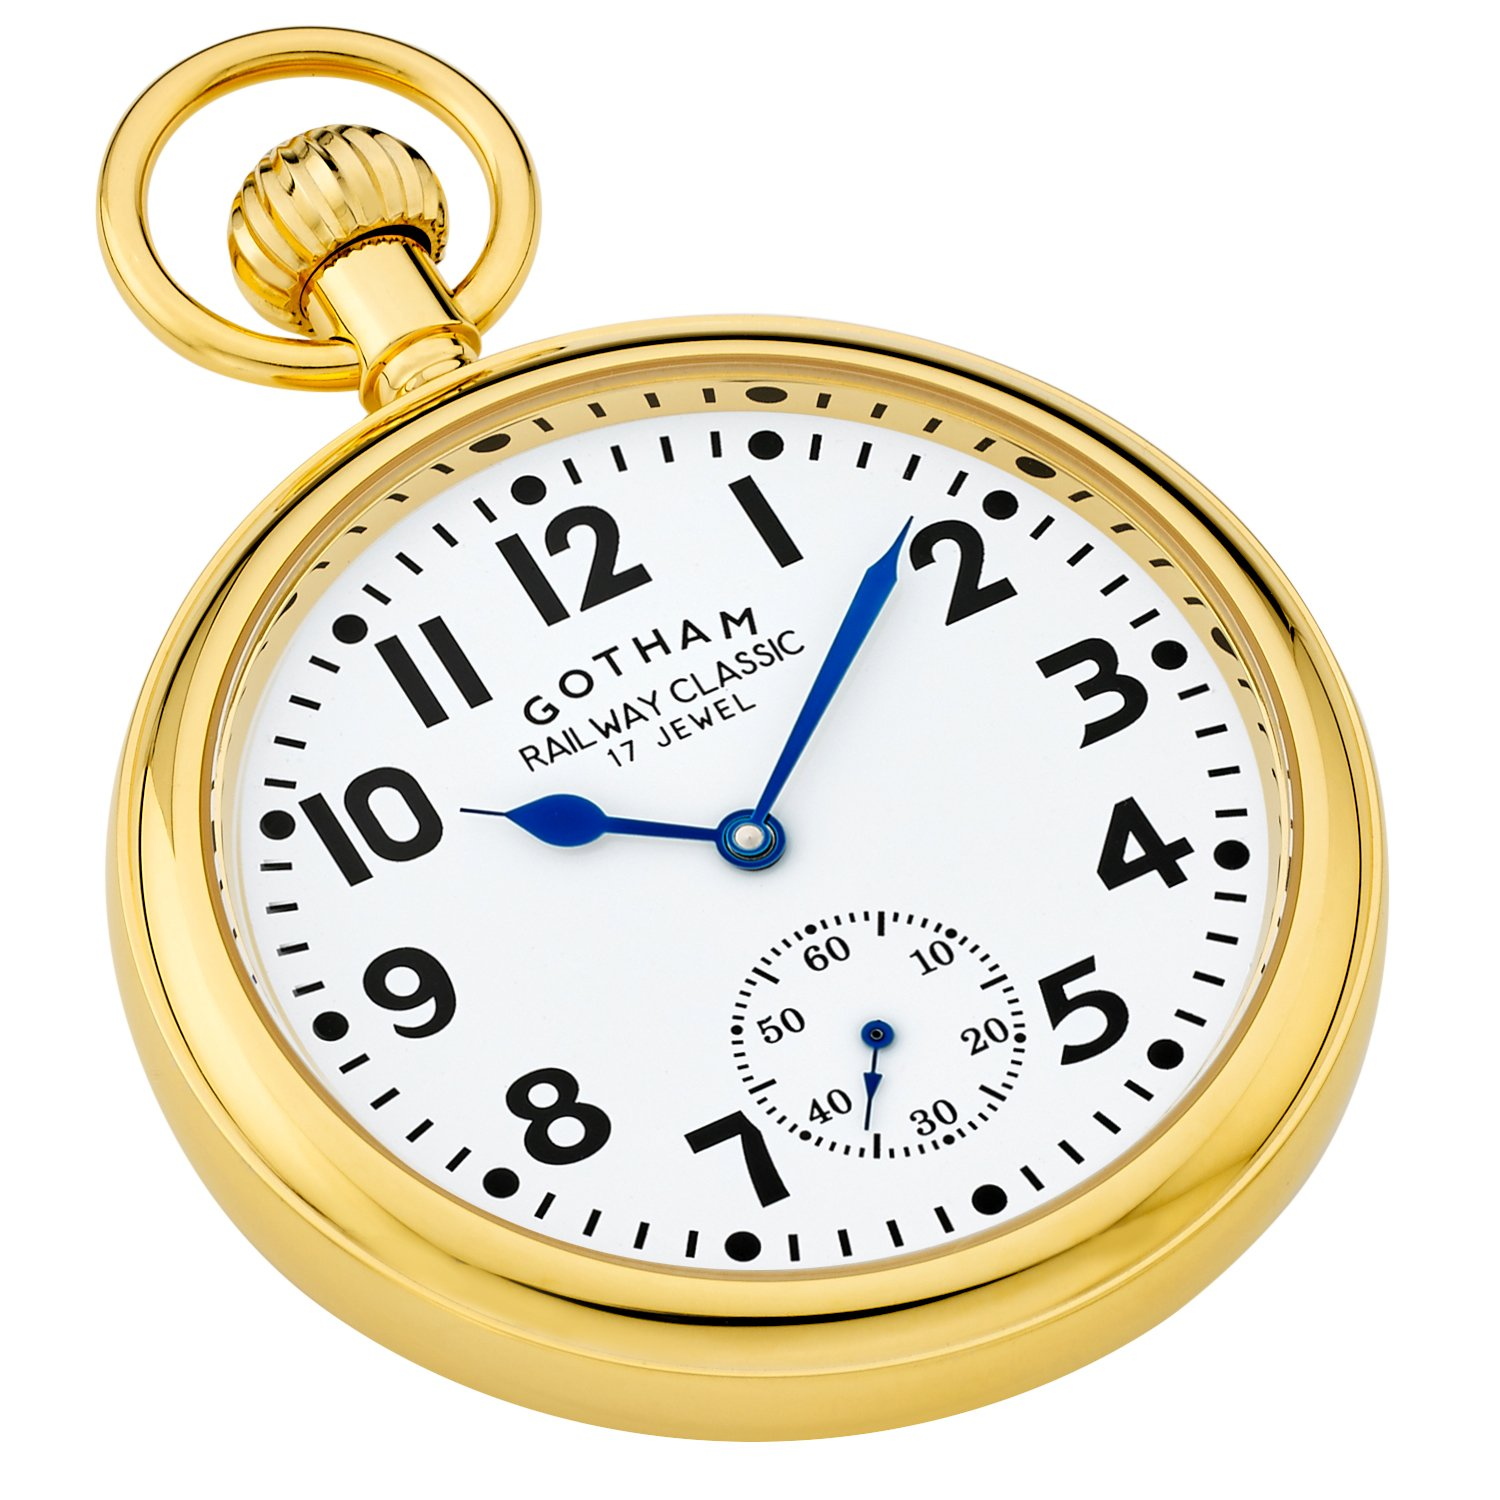 Gotham Men's Gold-Tone Mechanical Hand Wind Railroad Pocket Watch # GWC14104G by Gotham (Image #2)